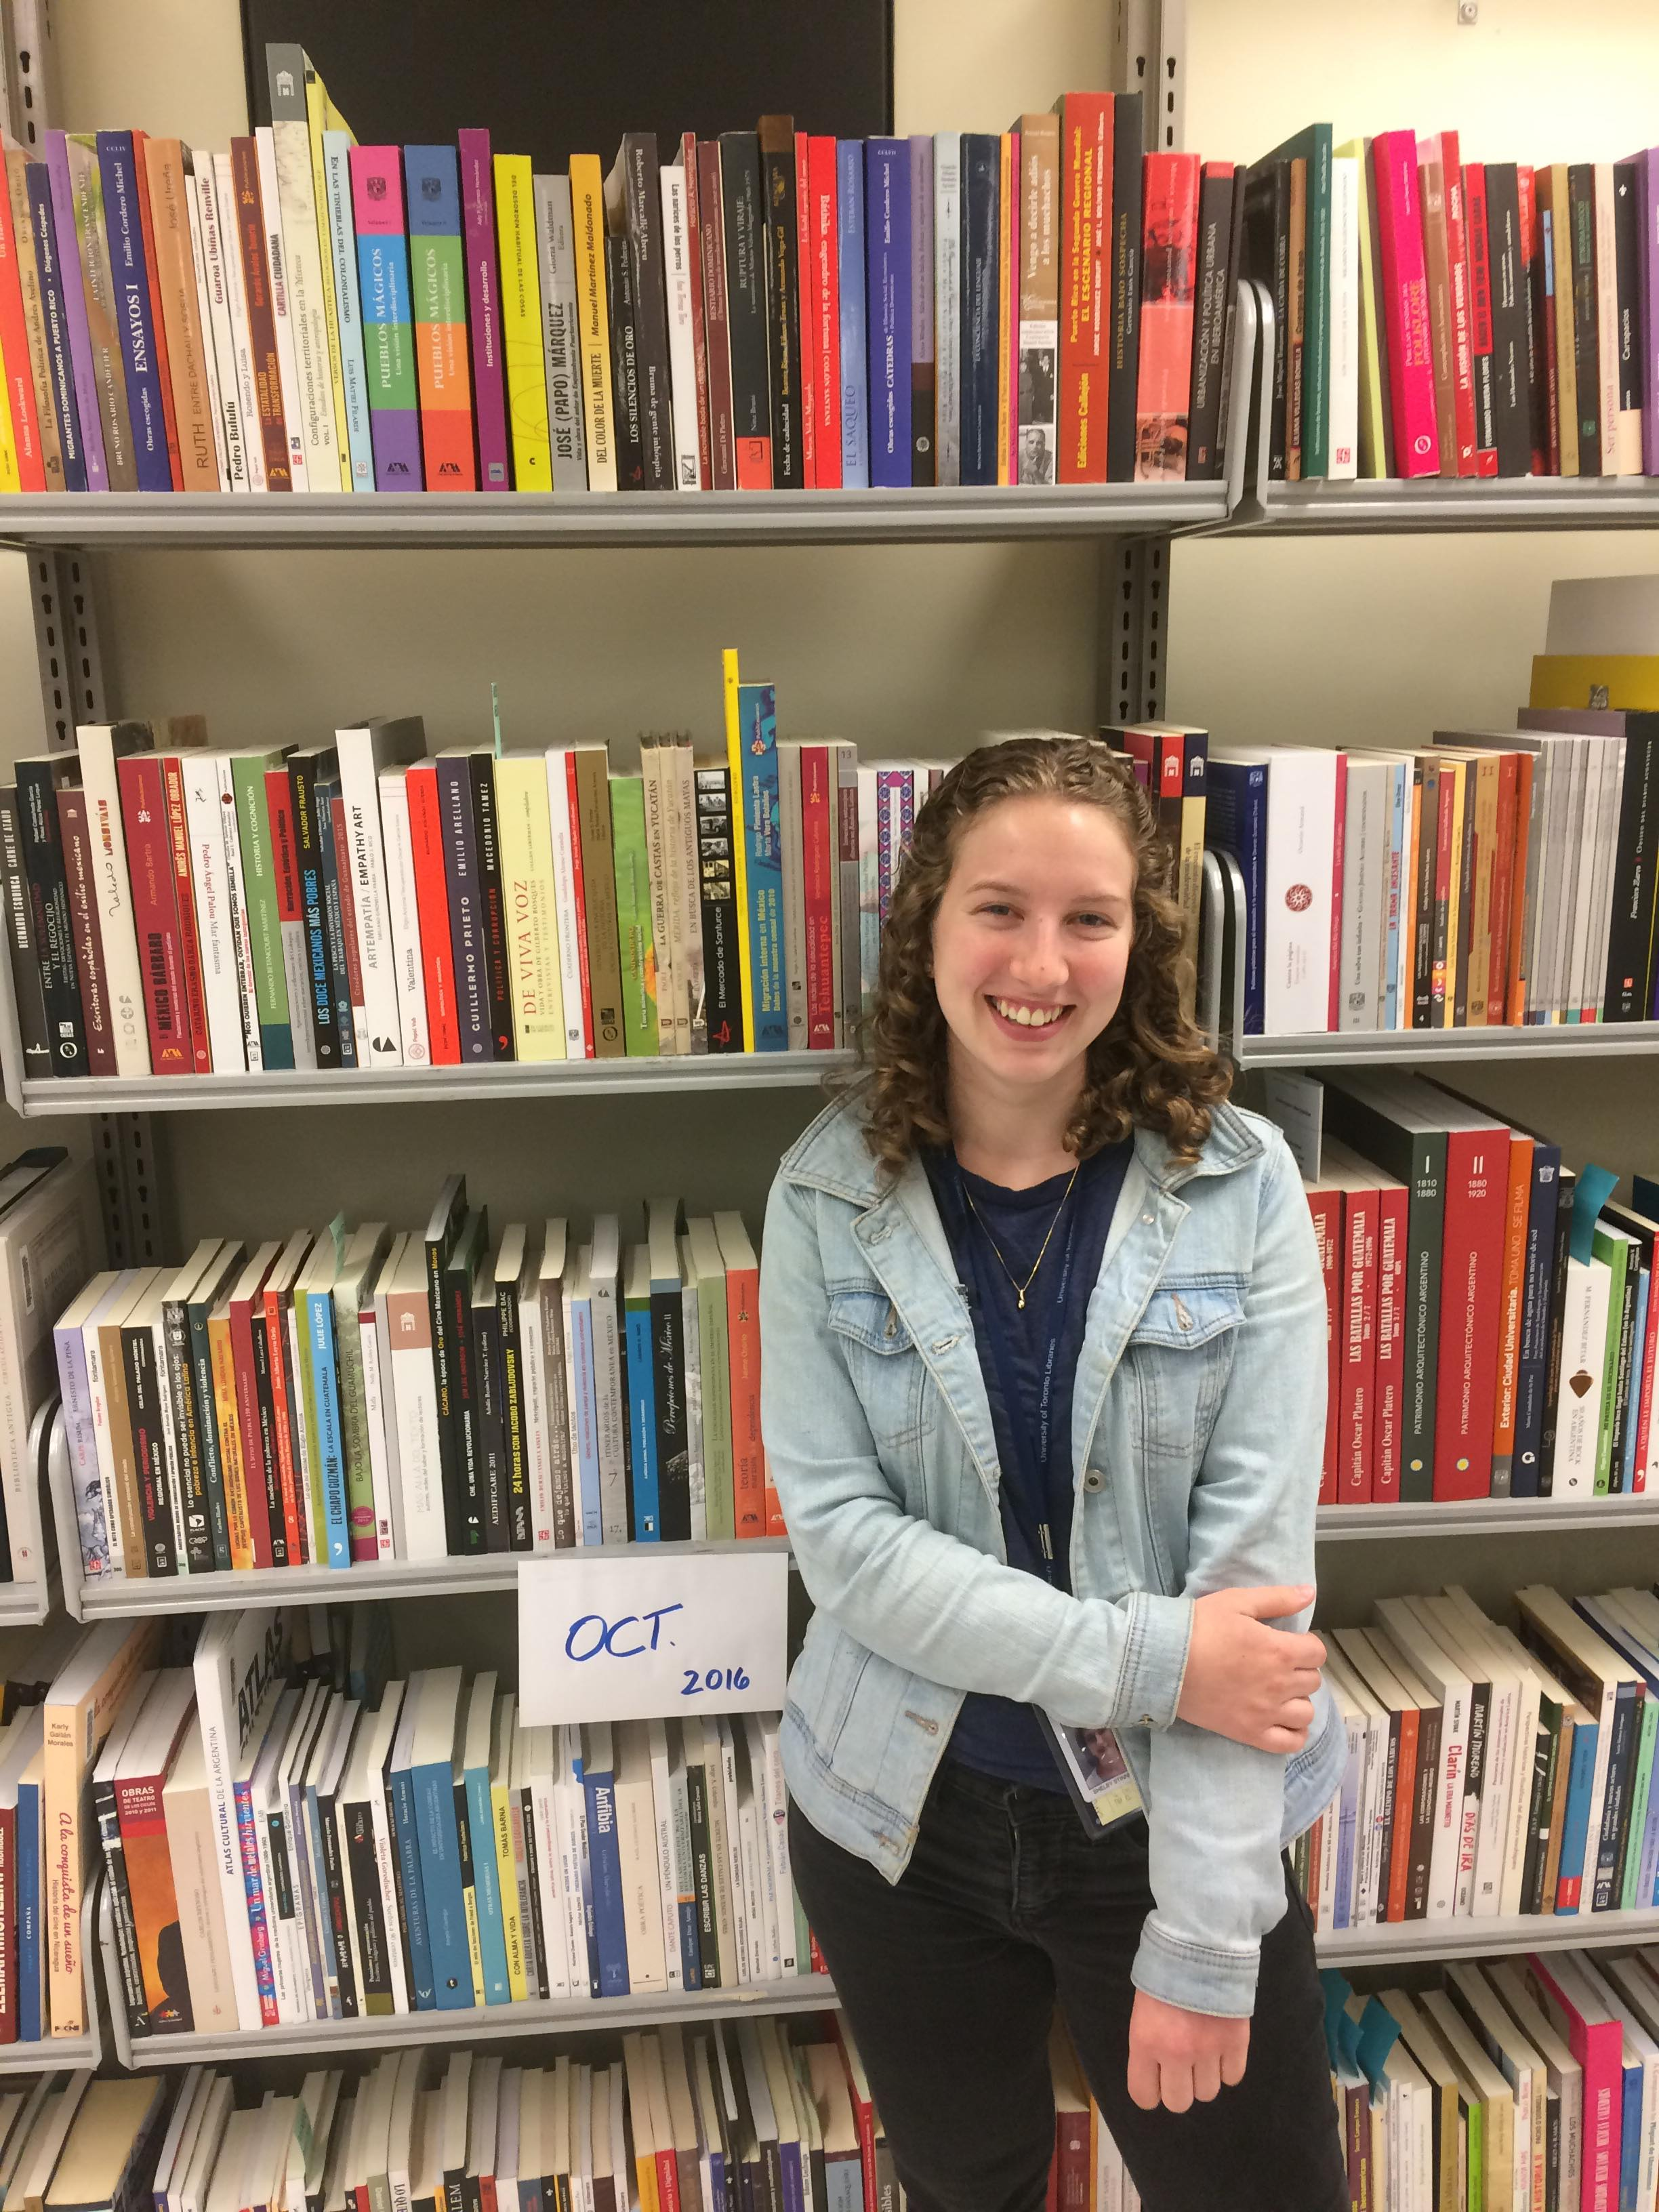 Shelby Stinnissen standing in front of book shelves